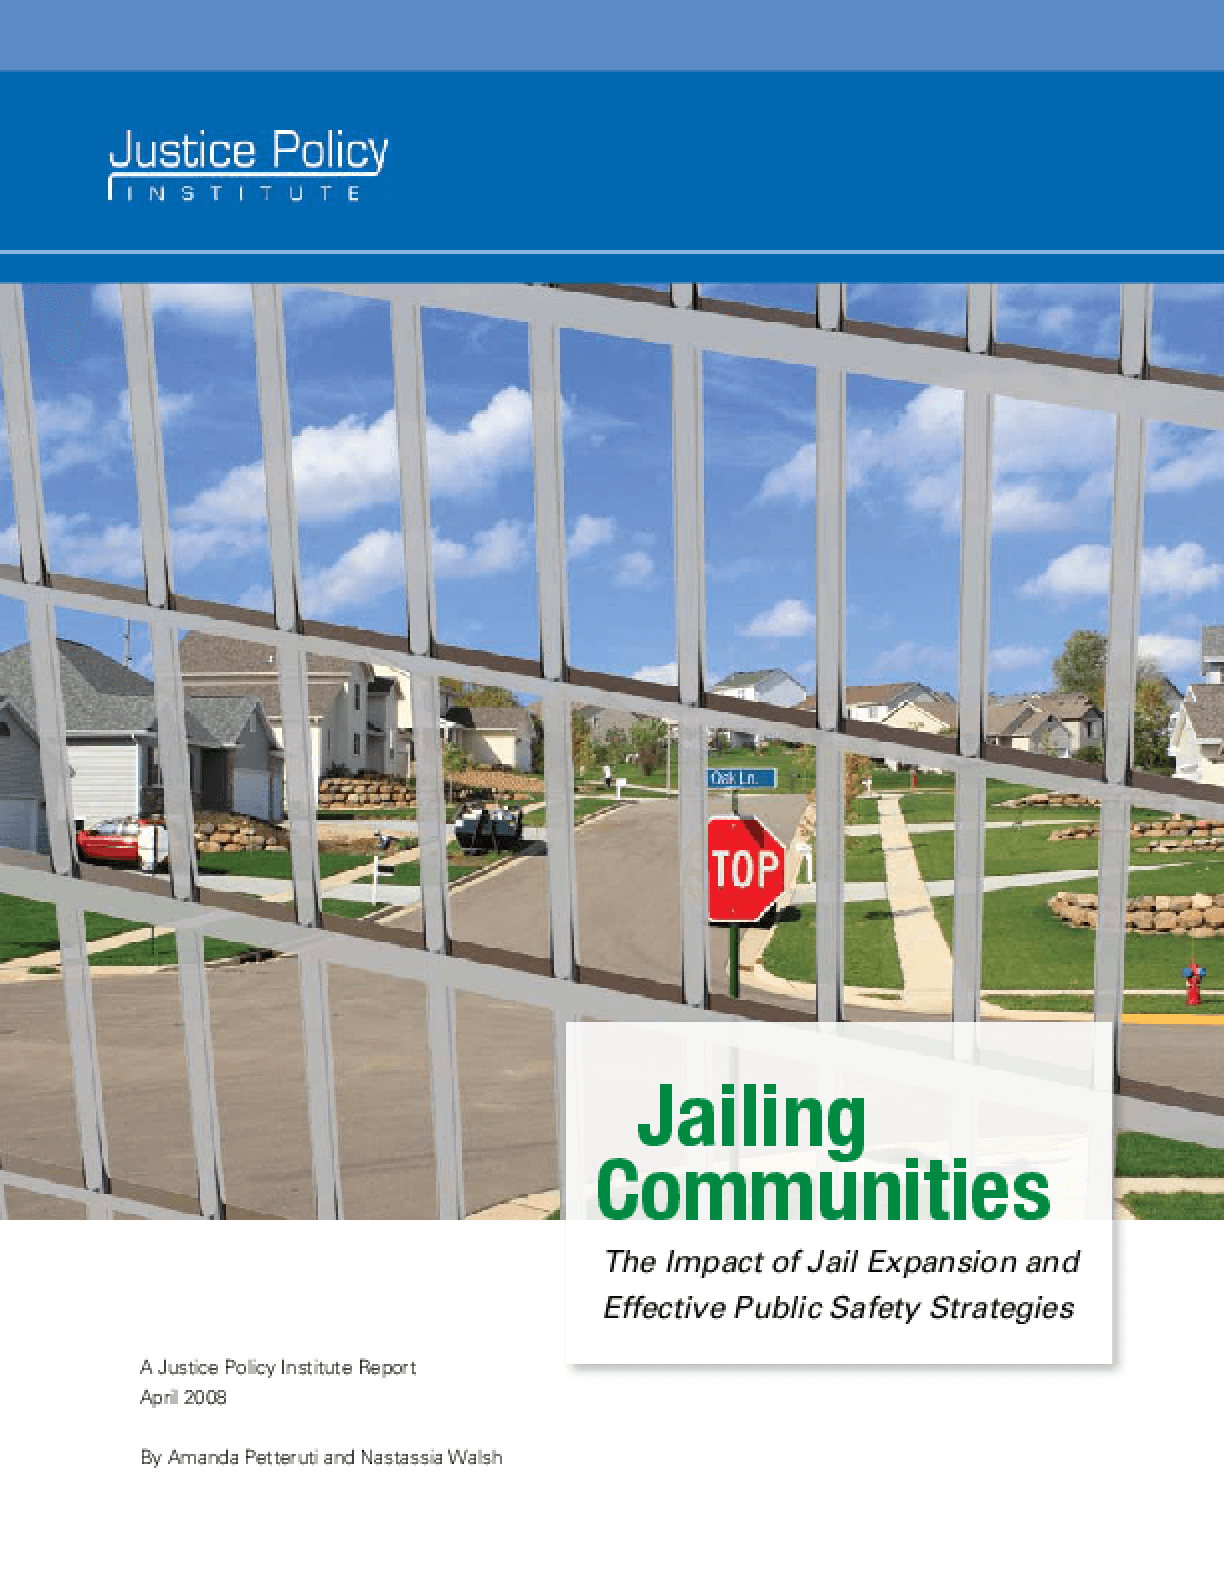 Jailing Communities: The Impact of Jail Expansion and Effective Public Safety Strategies